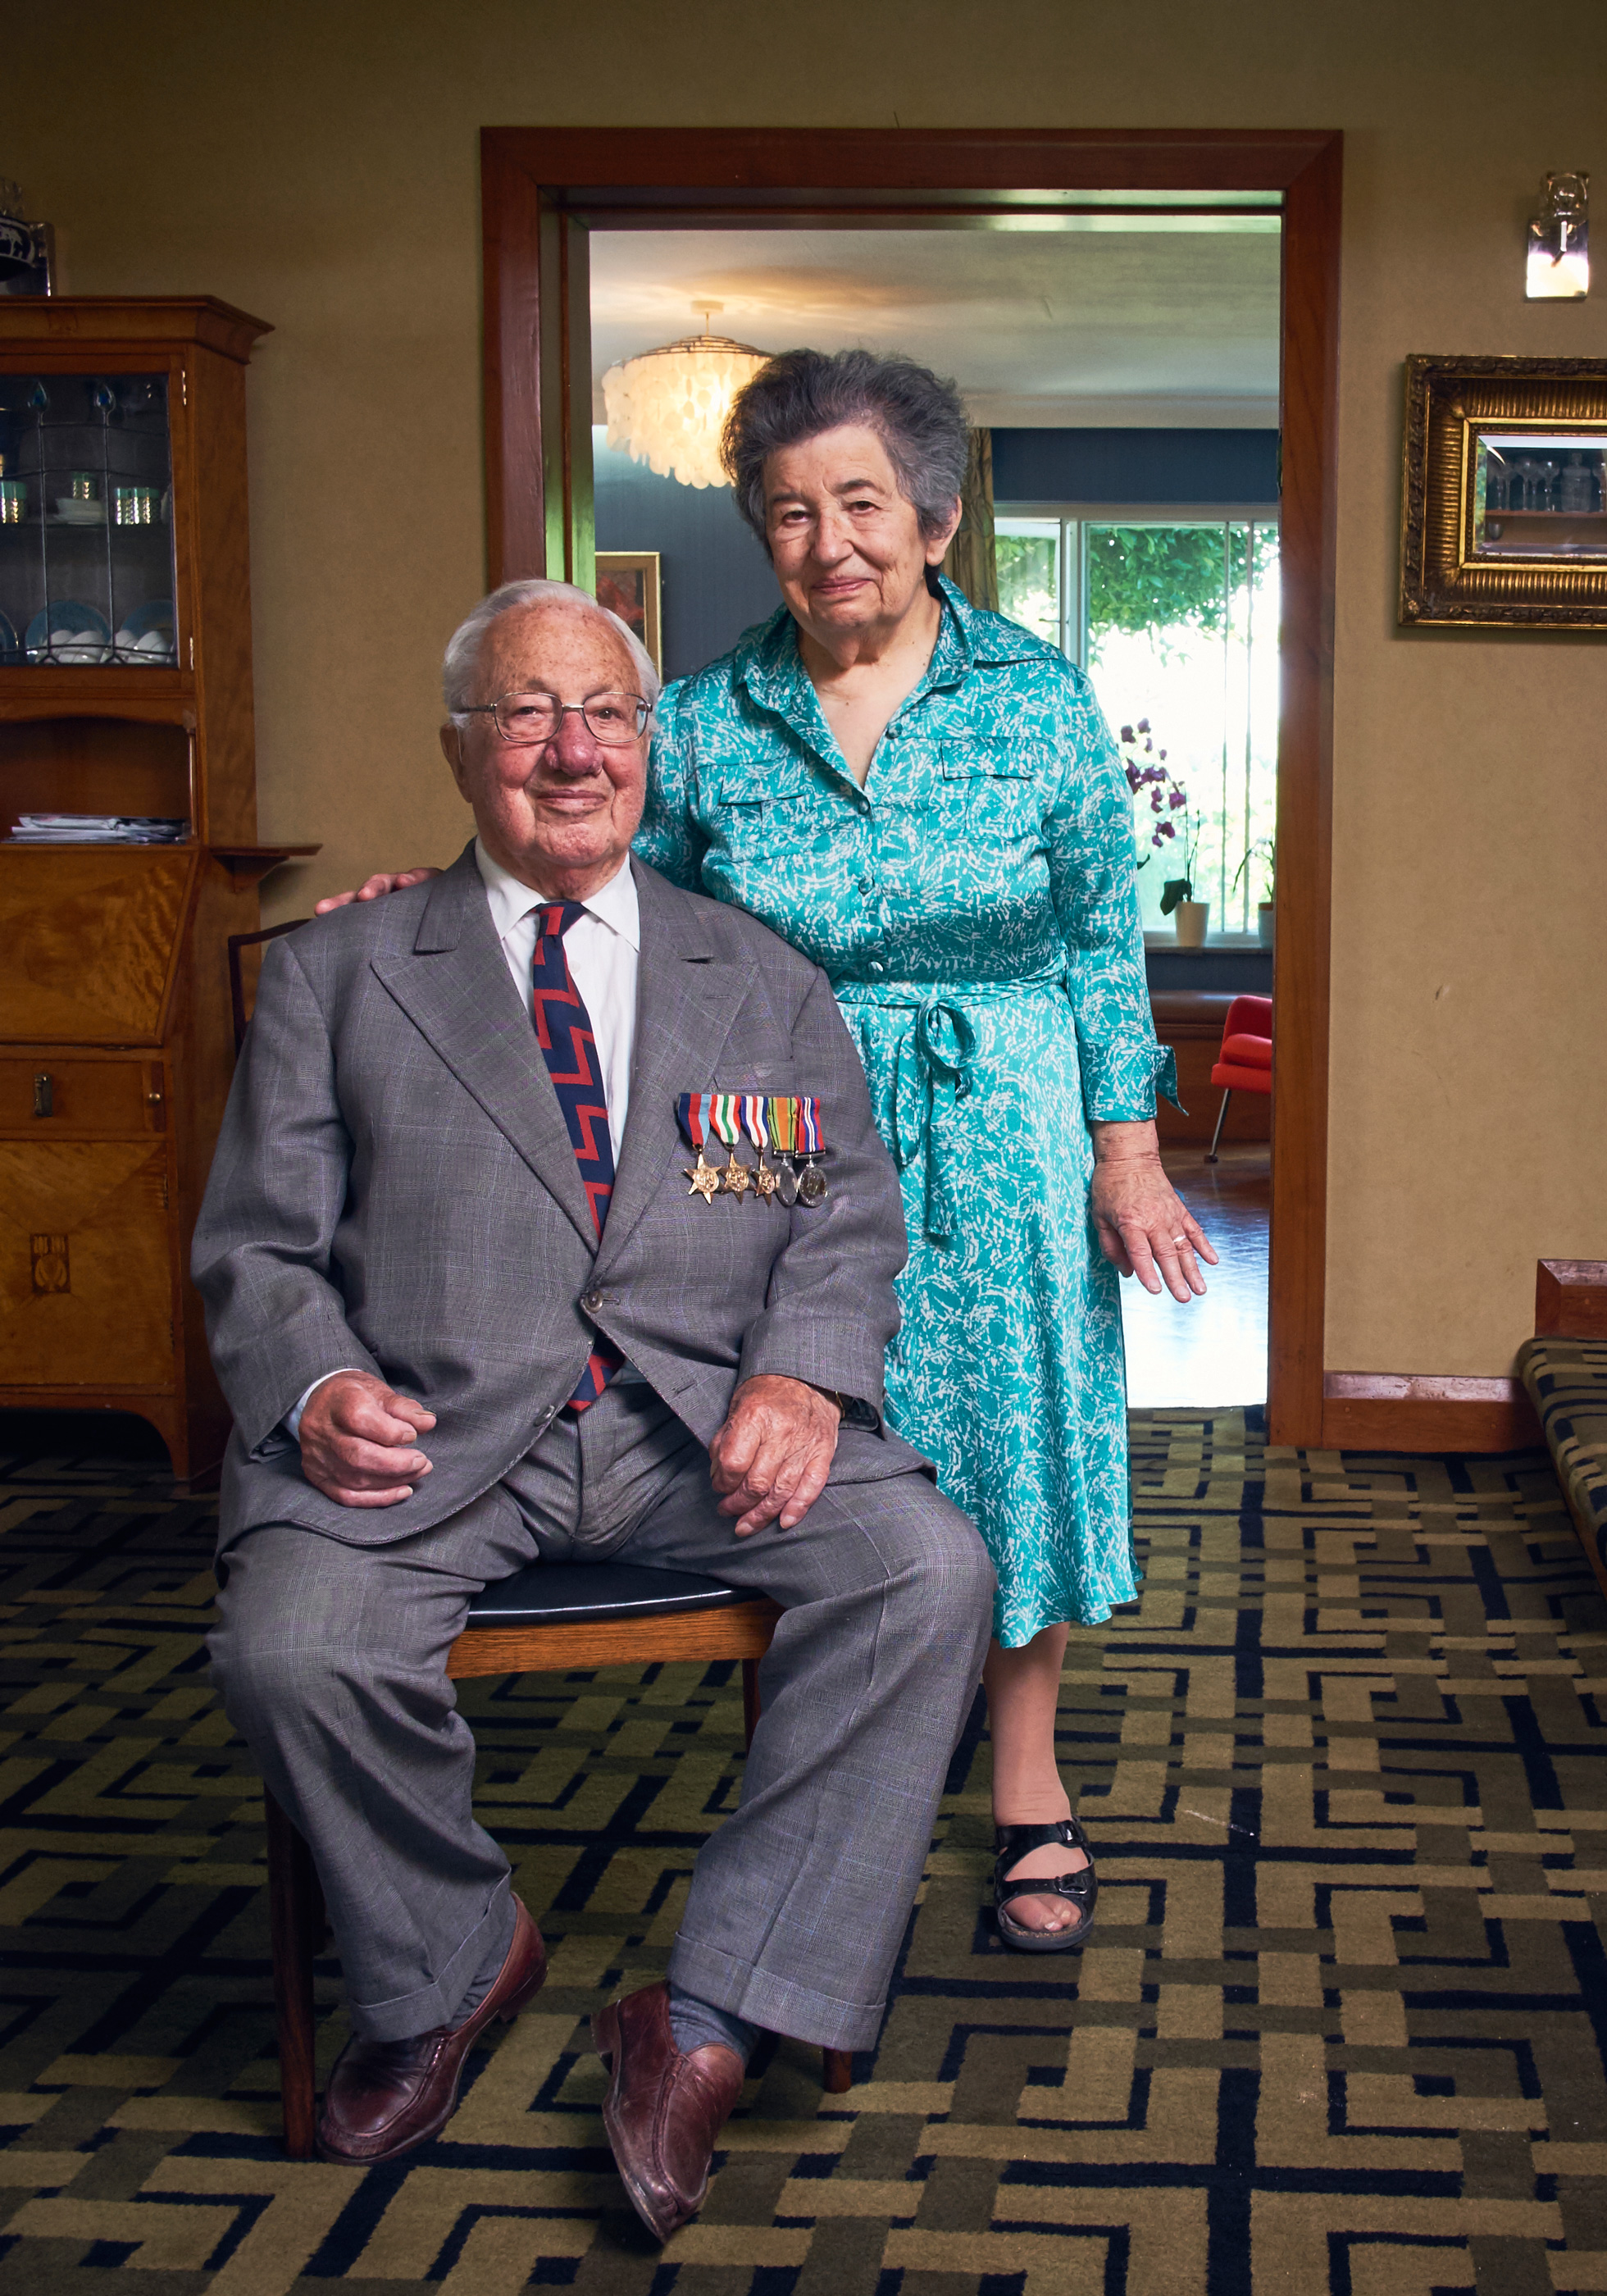 Matt-Stansfield-Photographer-lifestyle-portrait-Royal-British-Legion-Veteran-726